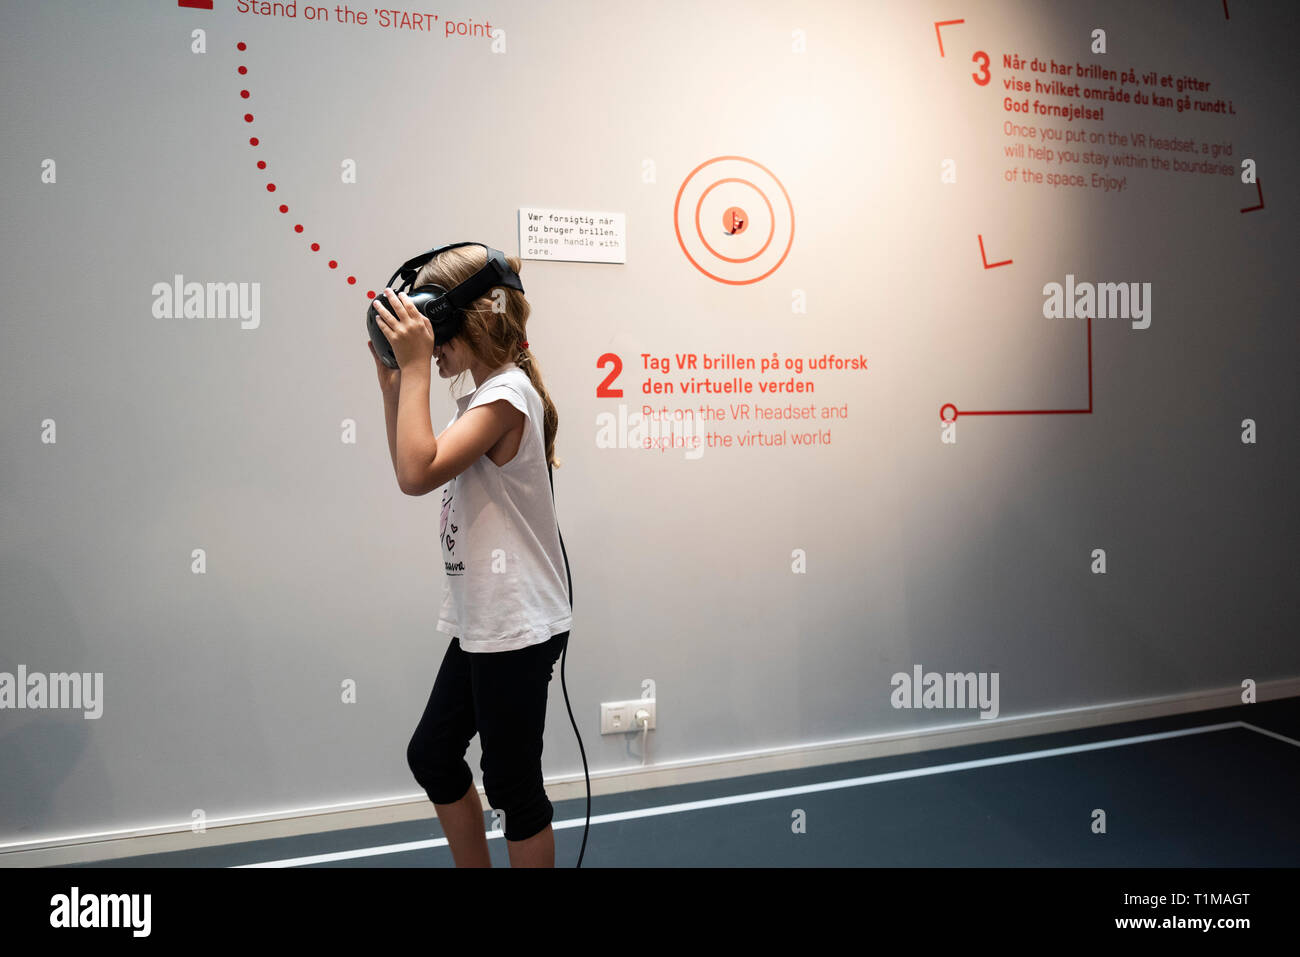 Copenhagen. Denmark. Child using a VR (virtual reality) headset to interact with an exhibit at the Danish Architecture Centre DAC, Bryghuspladsen 10. - Stock Image